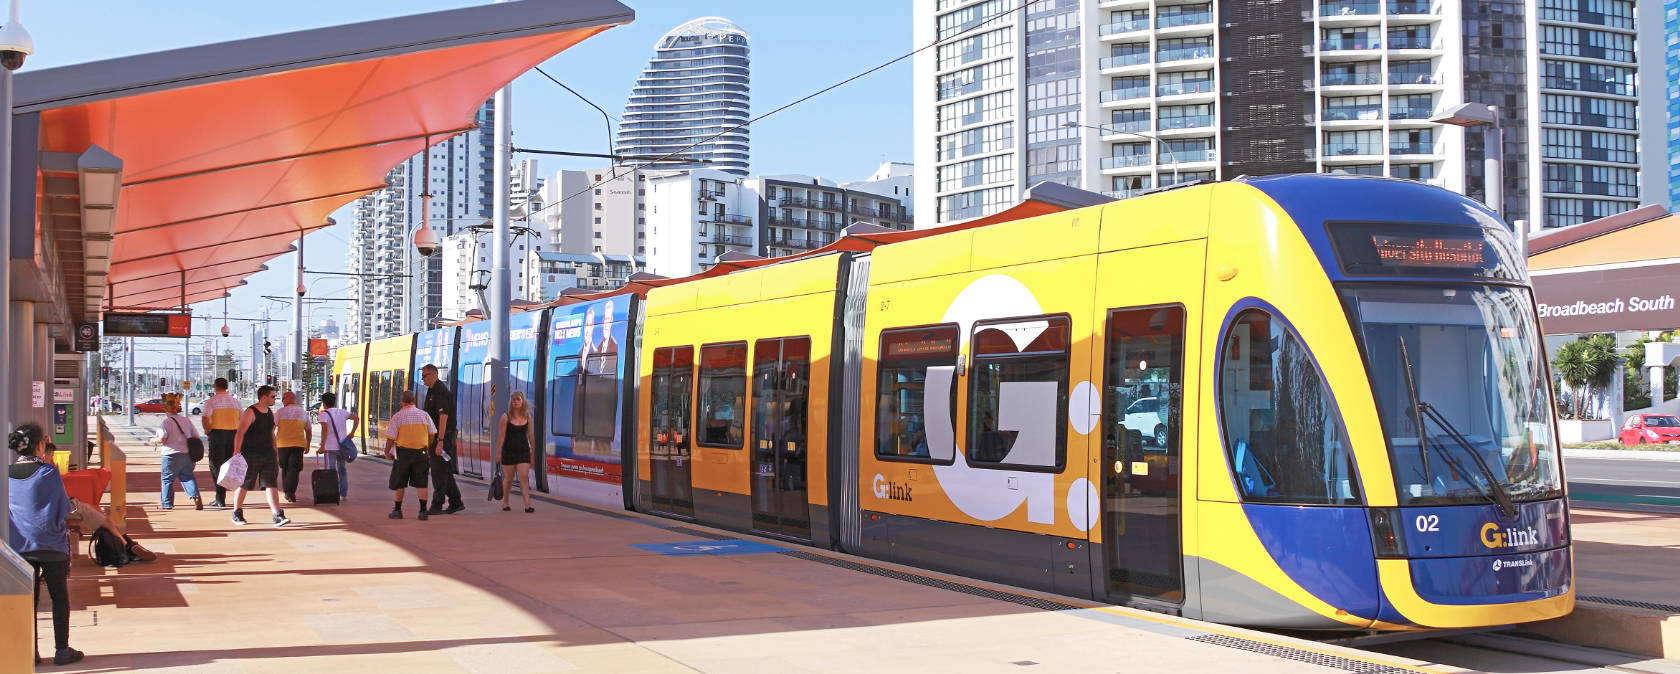 A yellow tram at a shaded tram stop